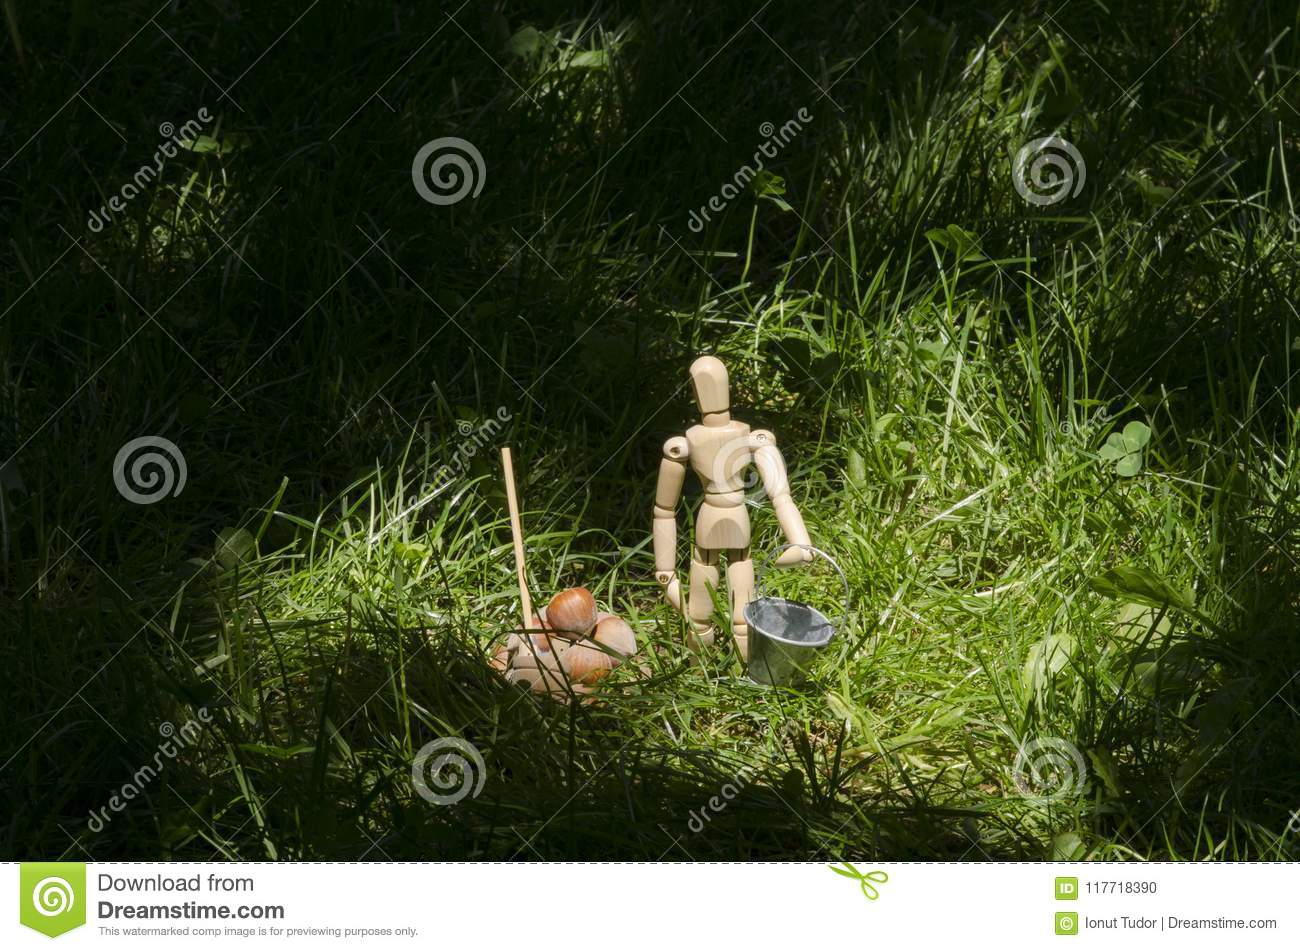 Wooden mannequin in green grass with miniature bucket and shovel